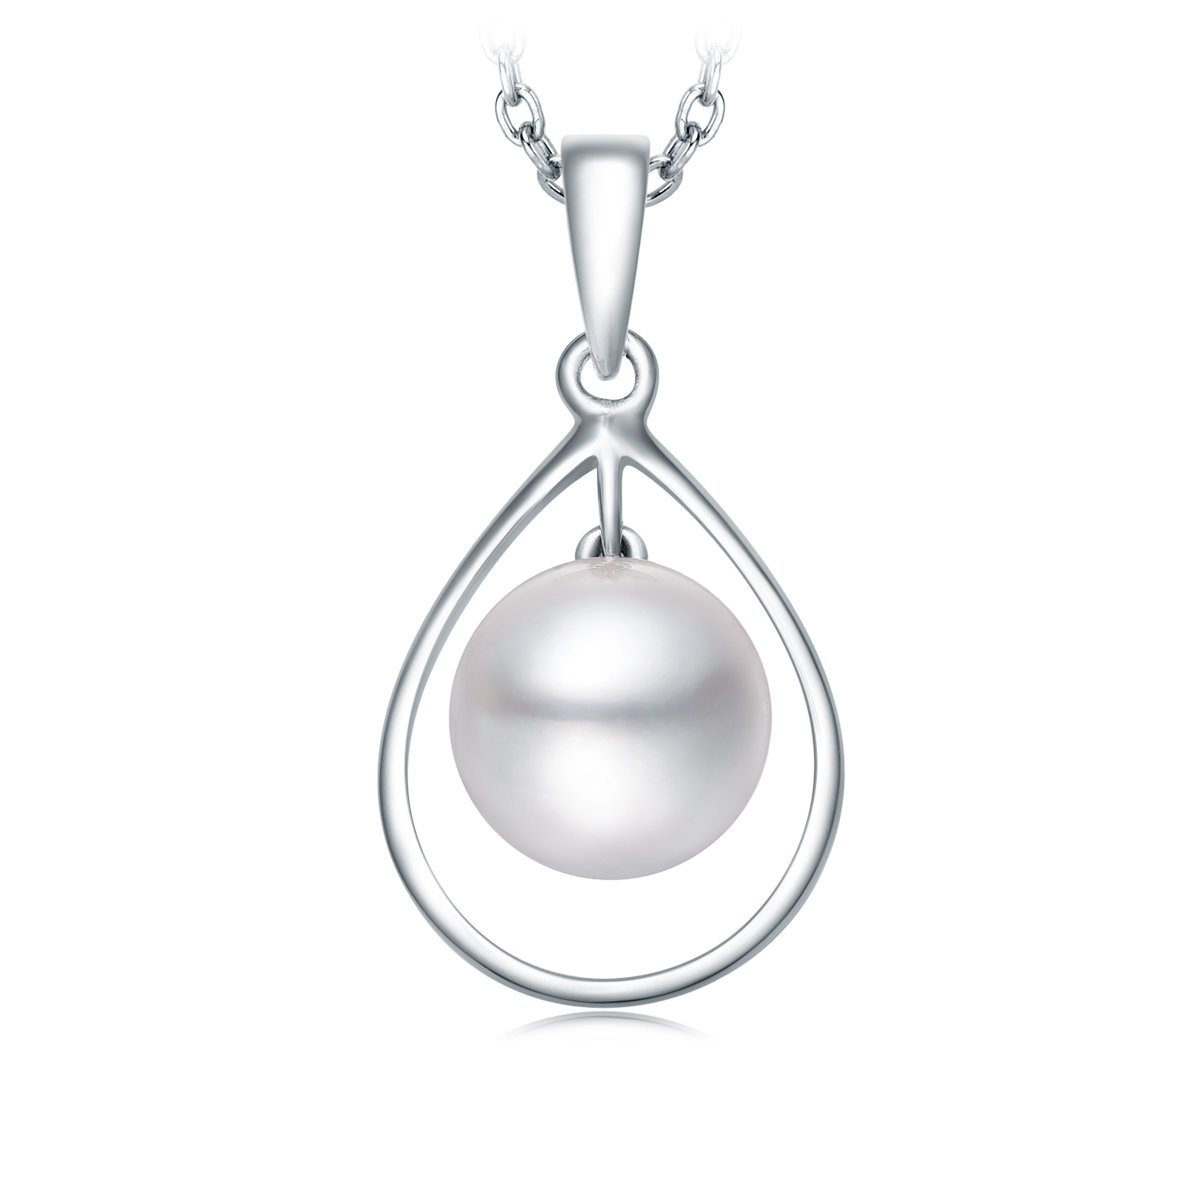 18K/750 White Gold Japan Cultured Pearl Pendant